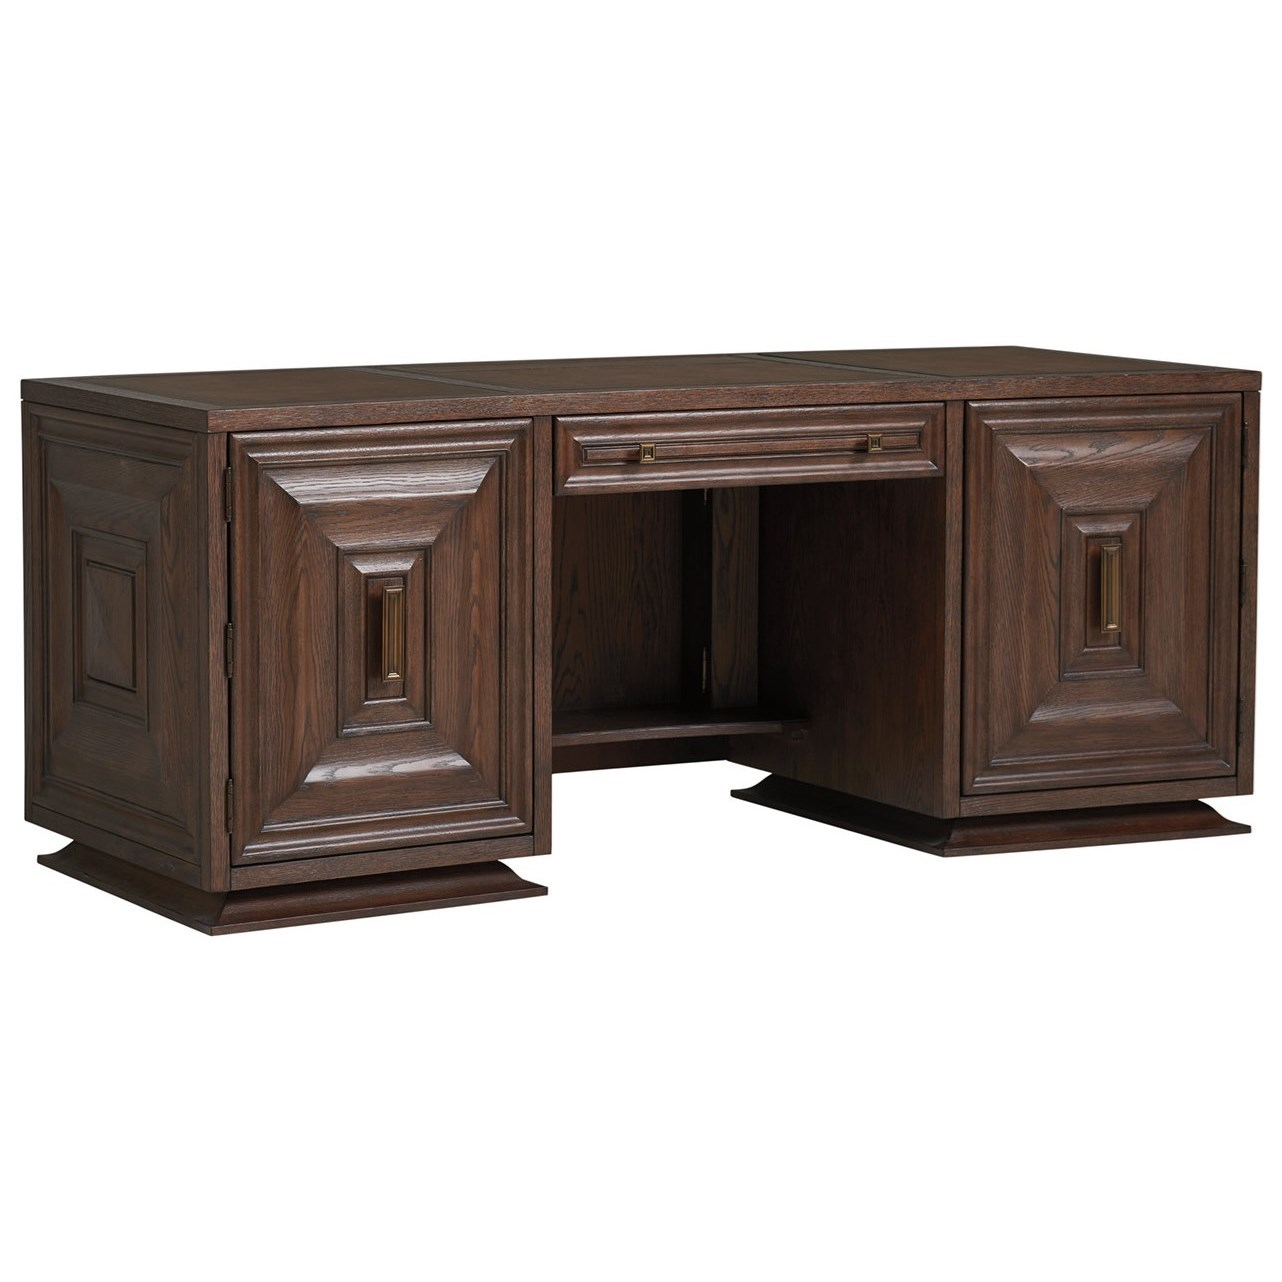 Barrymore Carson Executive Desk by Sligh at Baer's Furniture